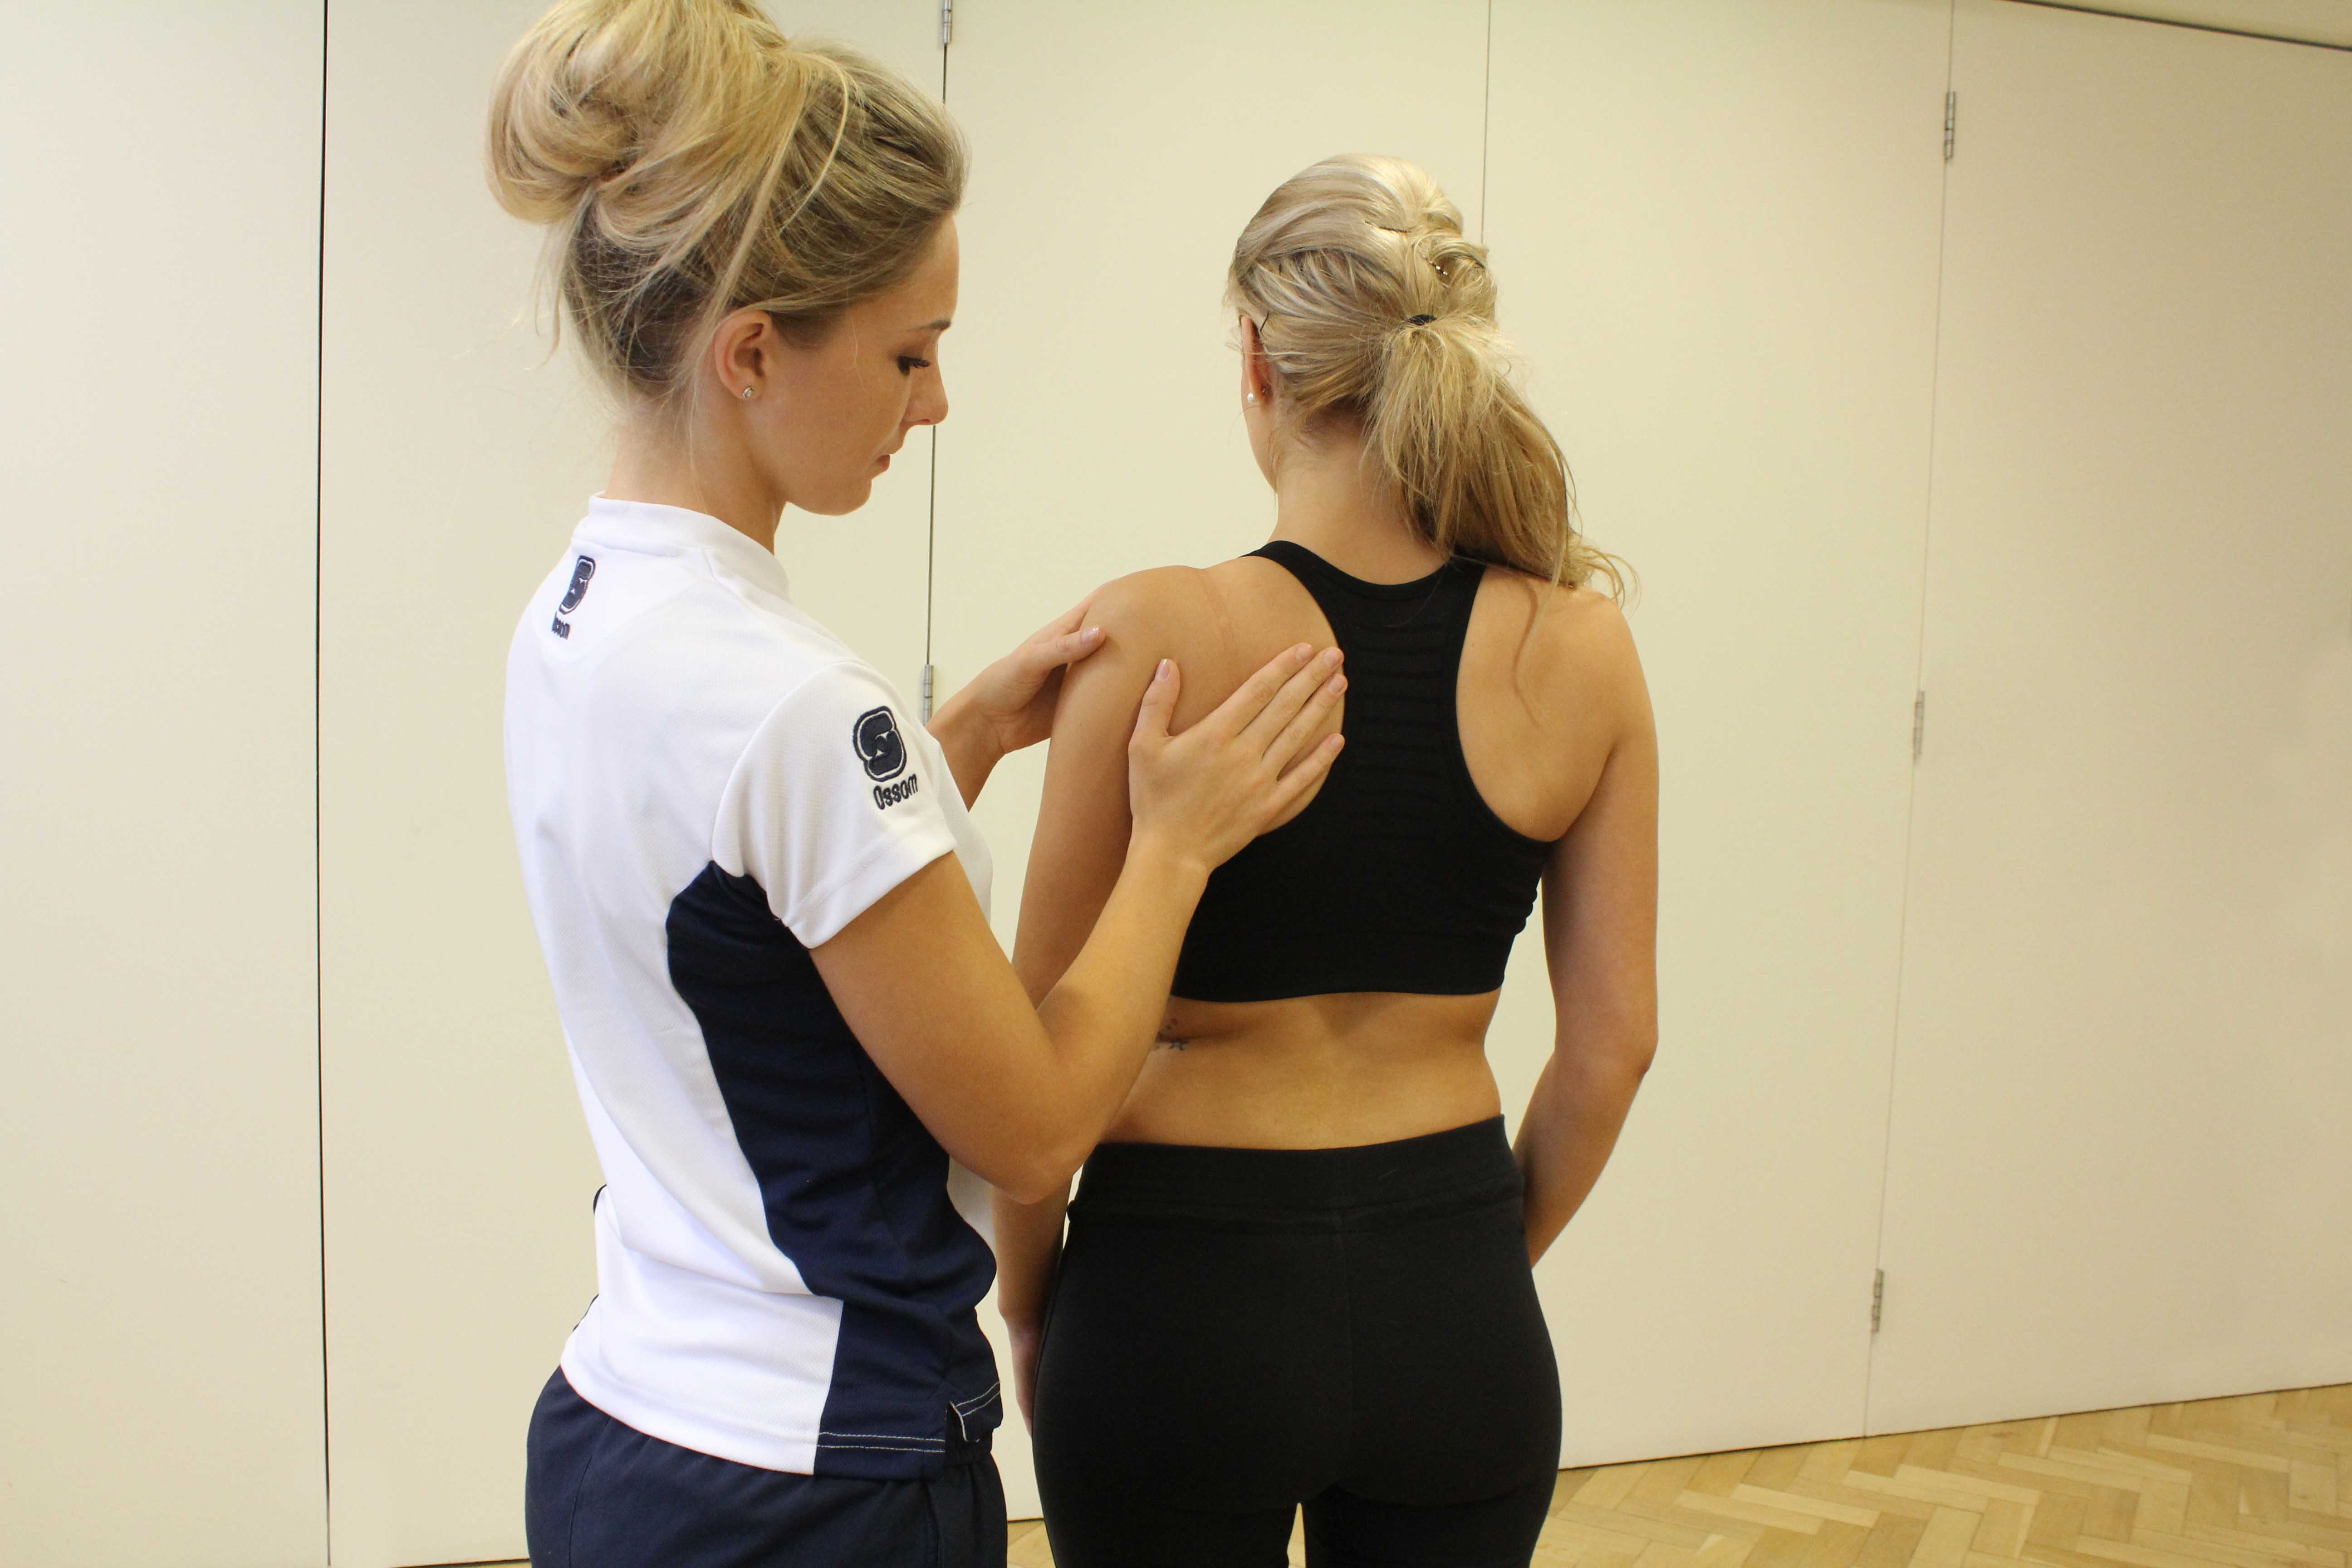 Shoulder assessment conducted by experienced therapist